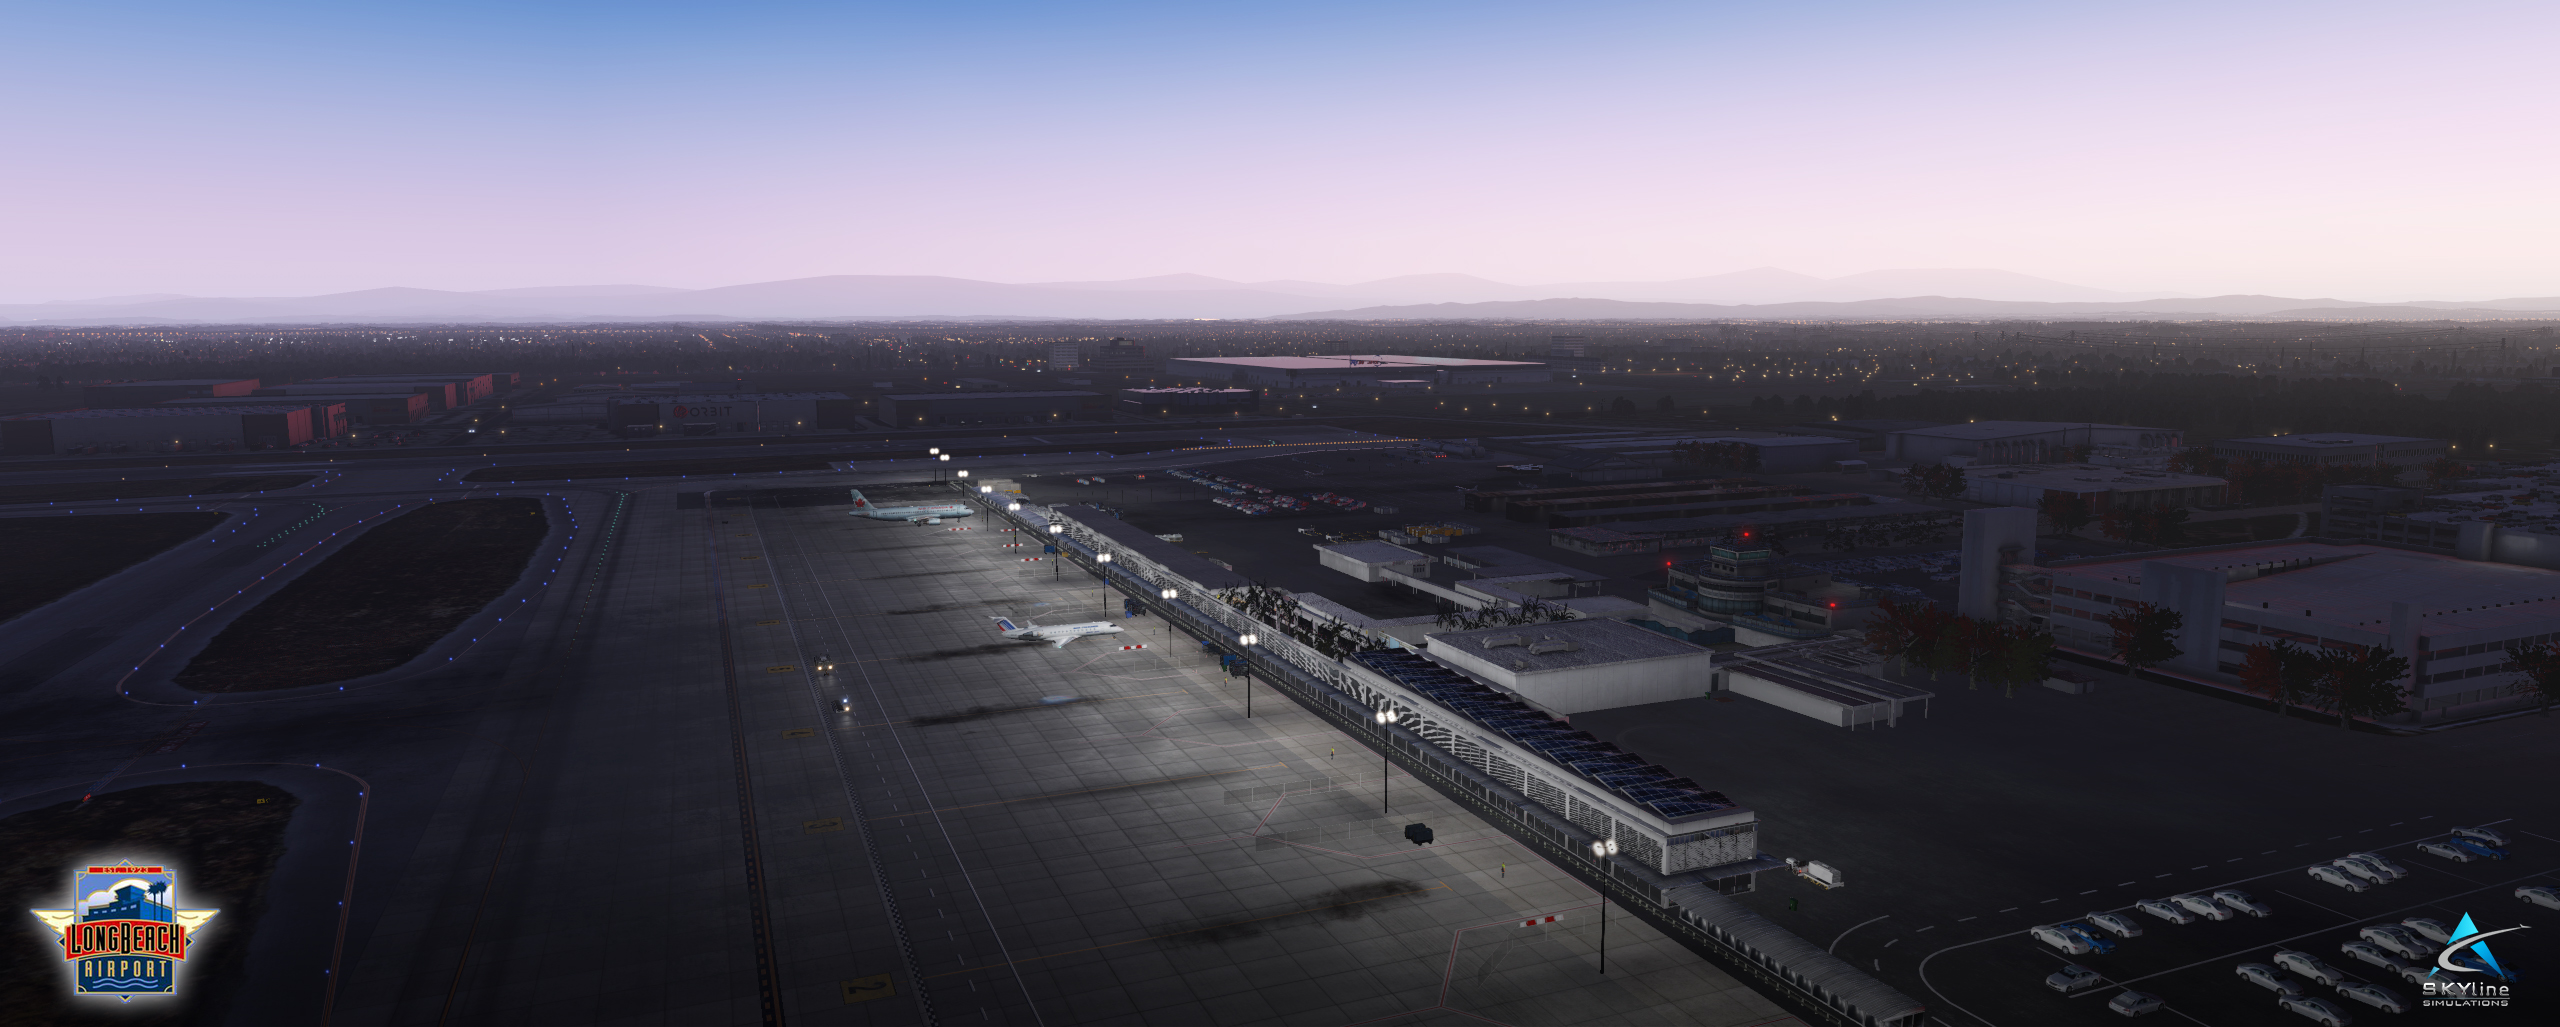 SKYLINE SIMULATIONS - KLGB – LONG BEACH AIRPORT FOR X-PLANE 11